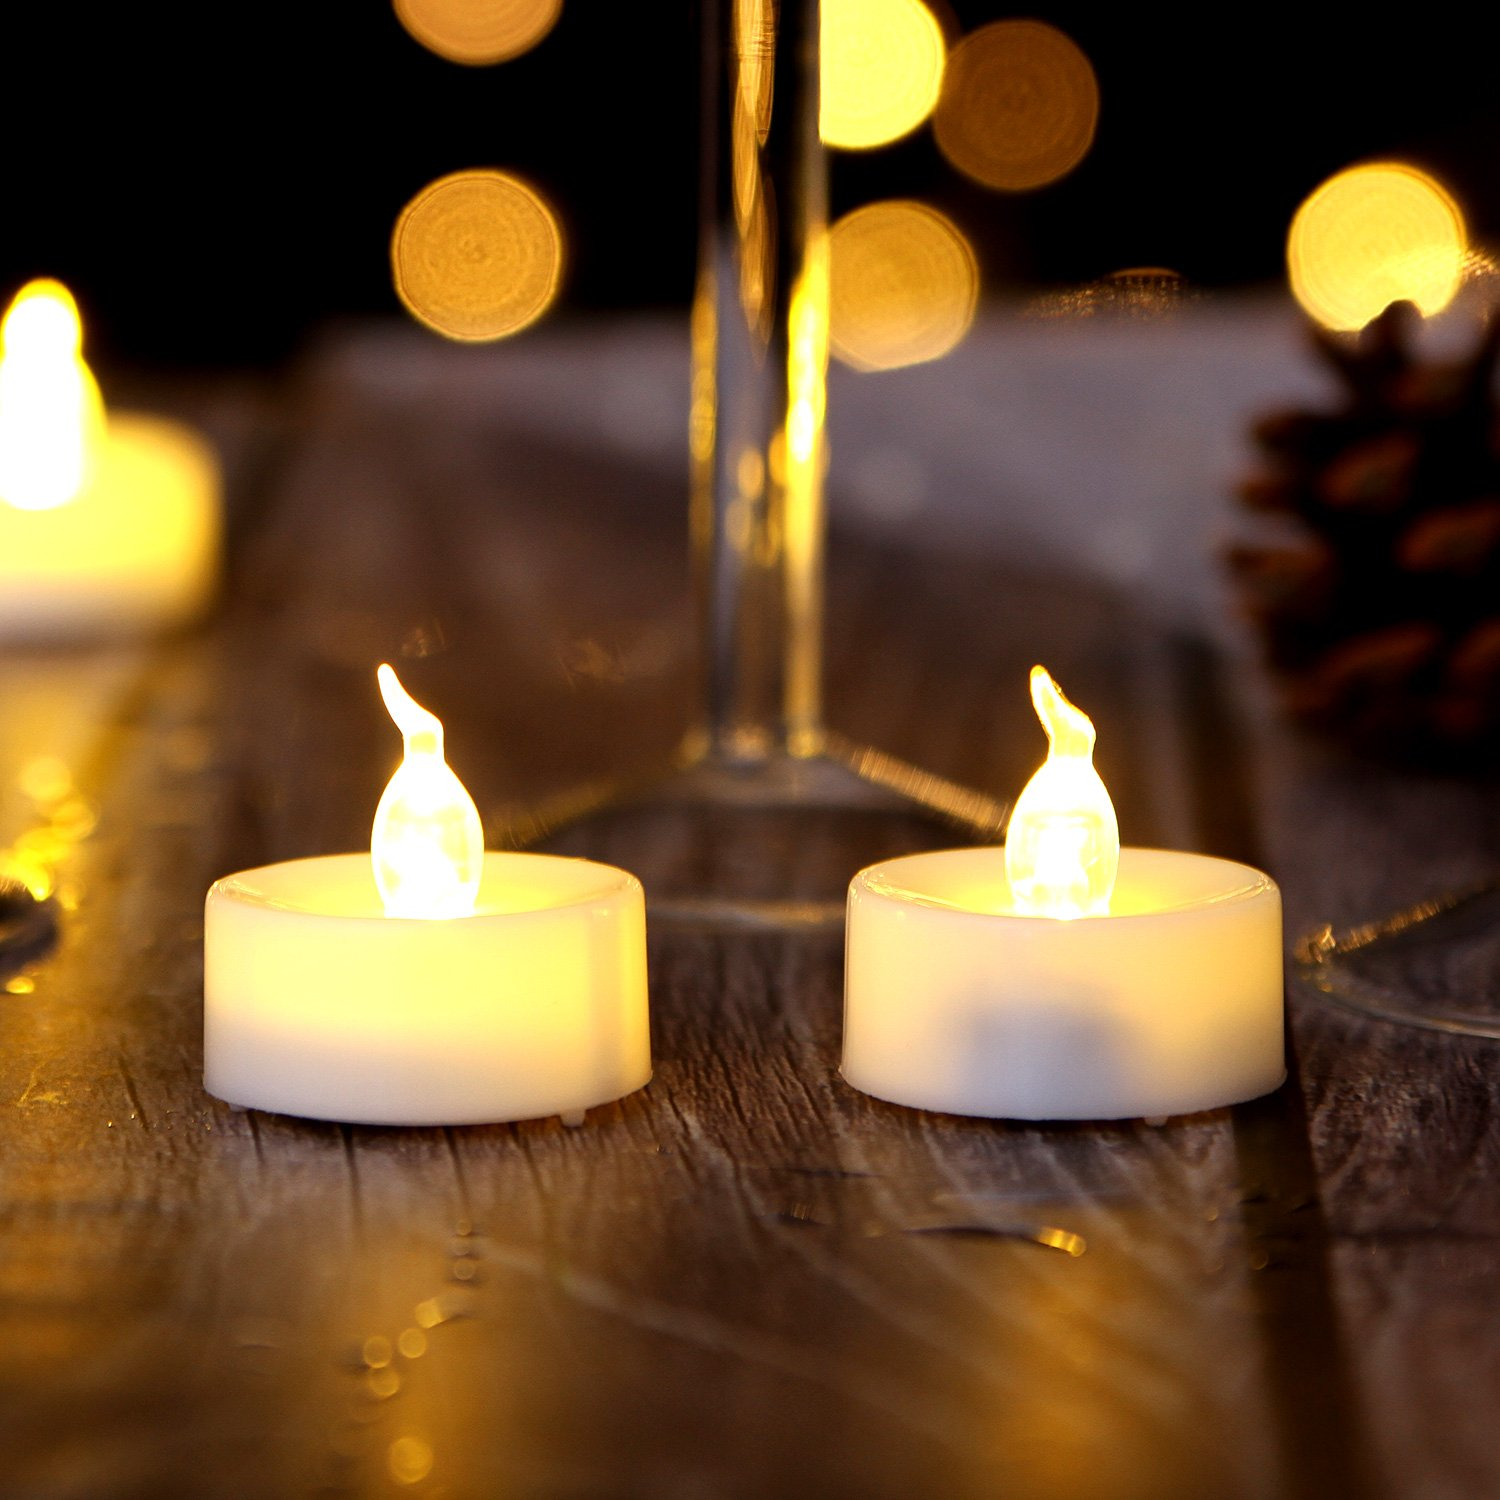 AGPtEK Tea Lights,100 Pack Flameless LED Candles Battery Operated Tealight Candles No Flicker Long Lasting Tealight for Wedding Holiday Party Home Decoration(Warm White) by AGPTEK (Image #2)